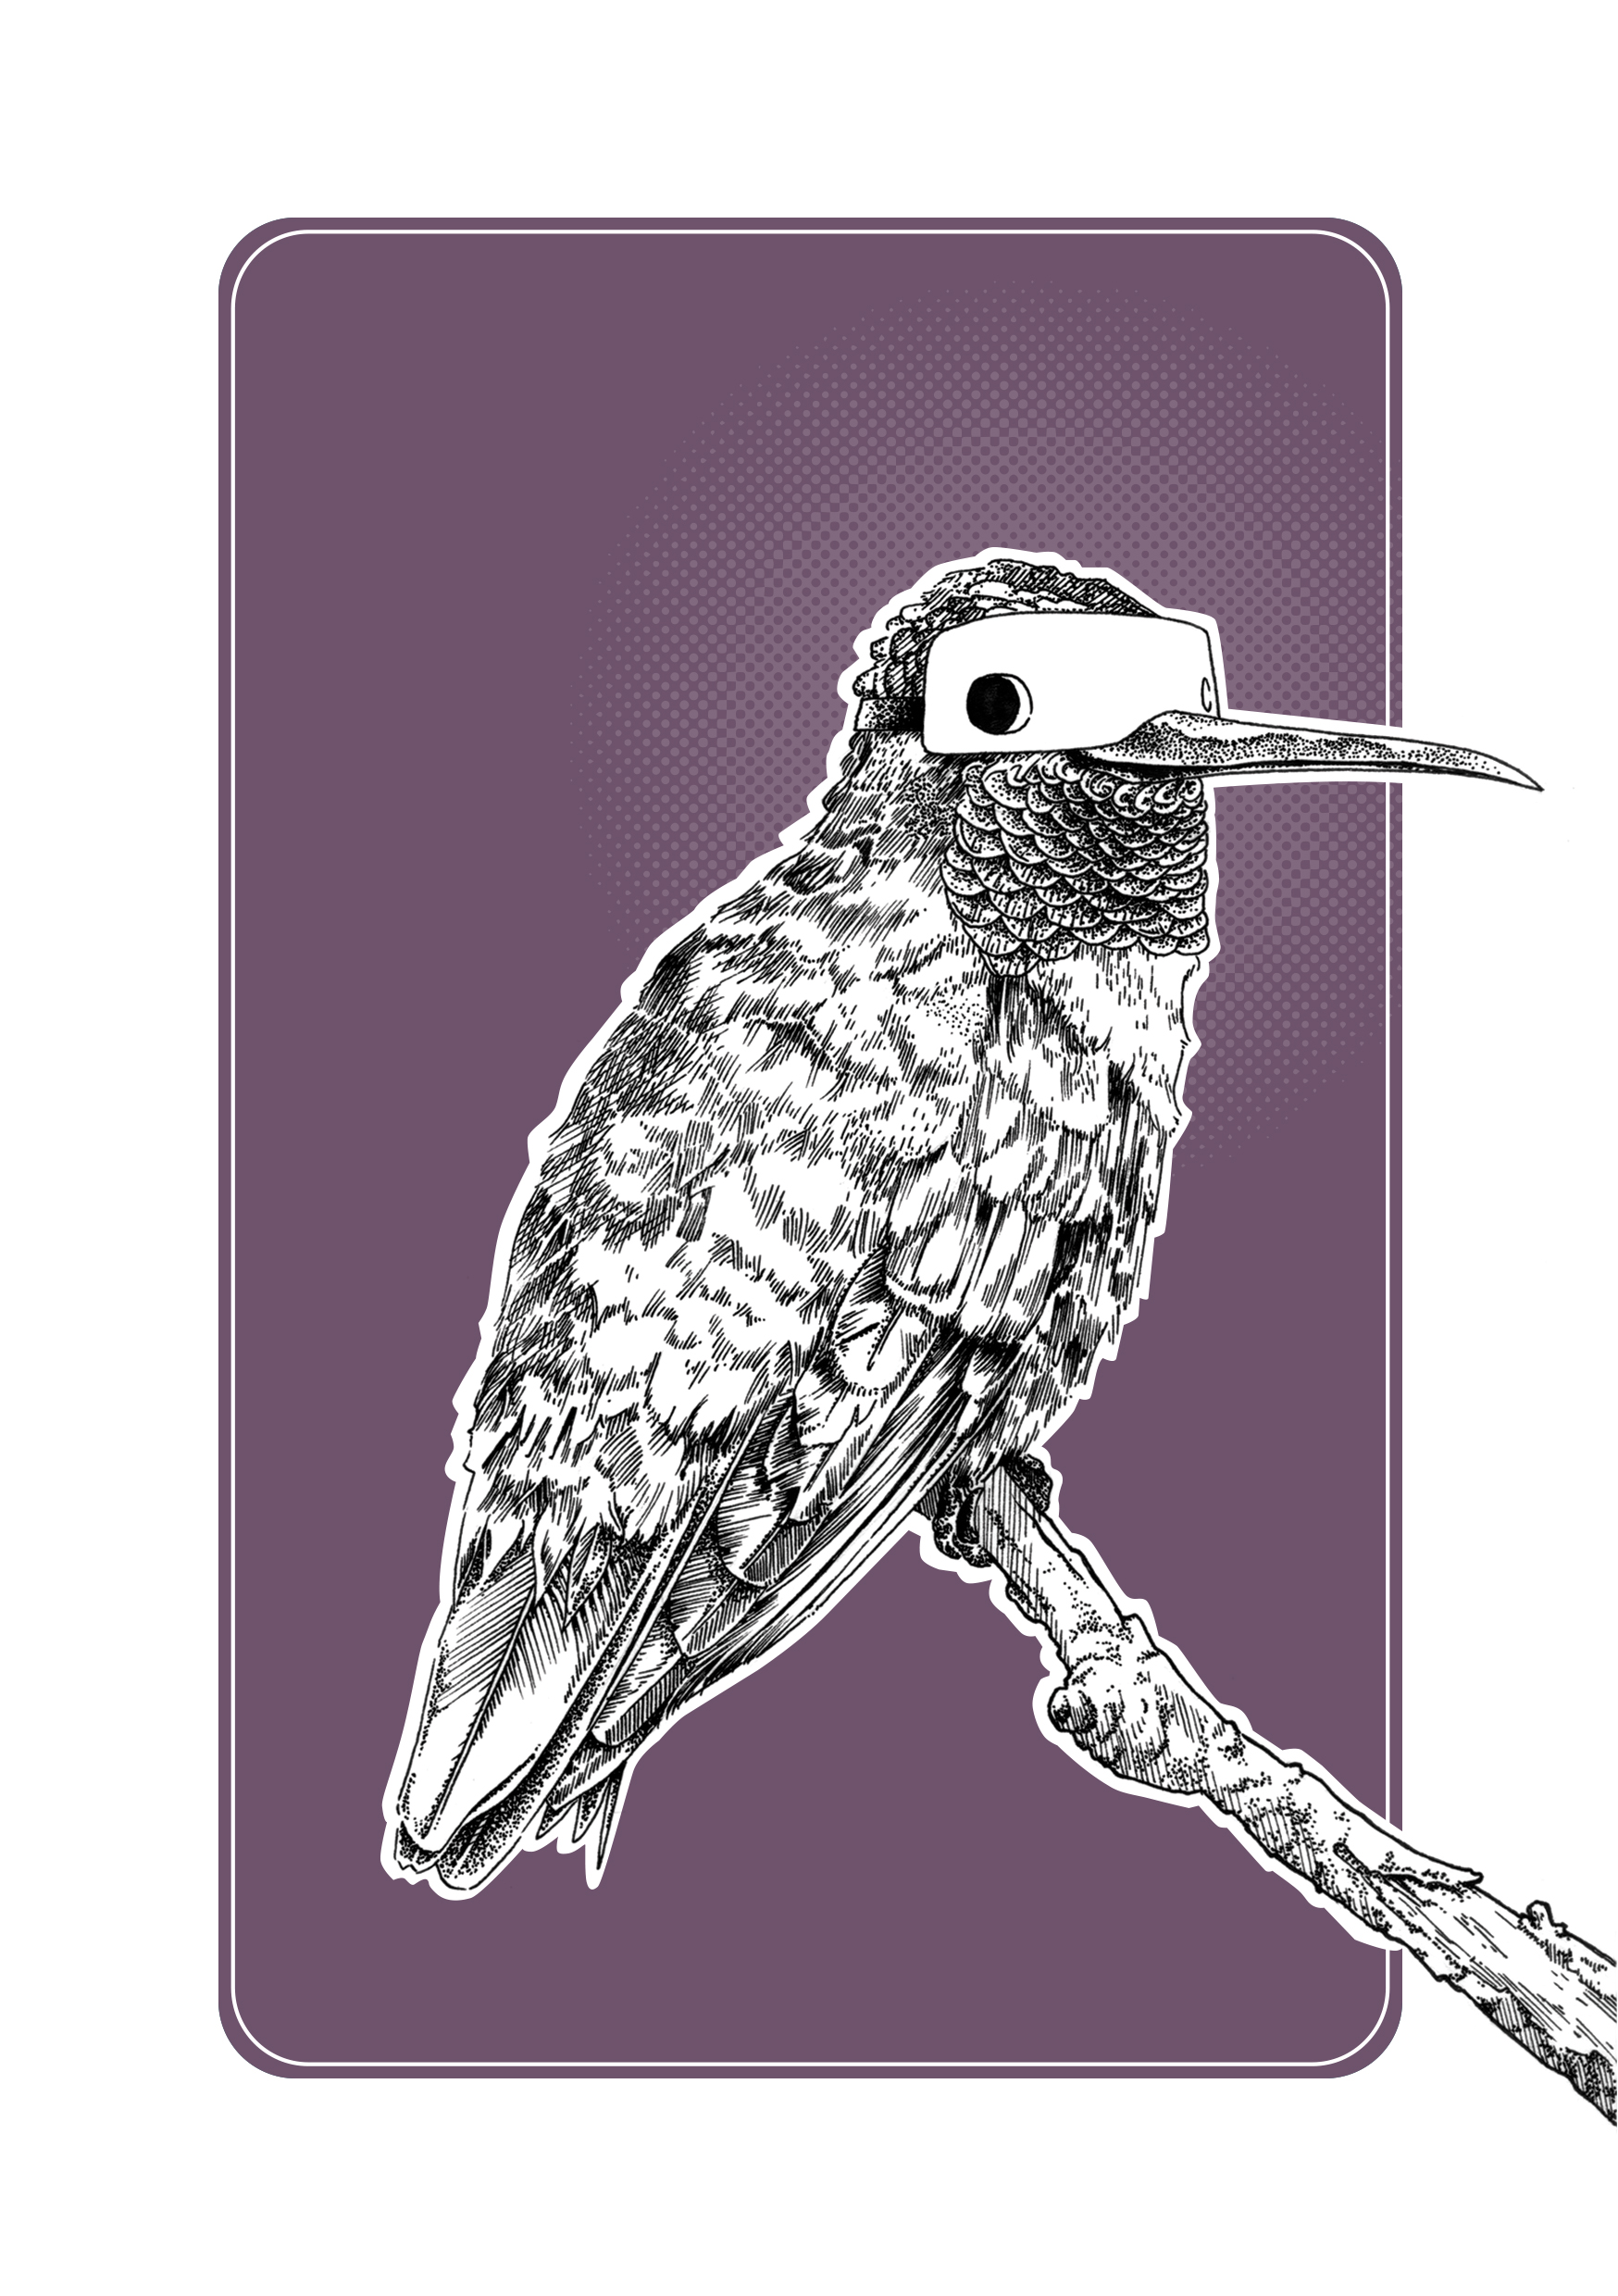 Hummingbird Final XL.jpg